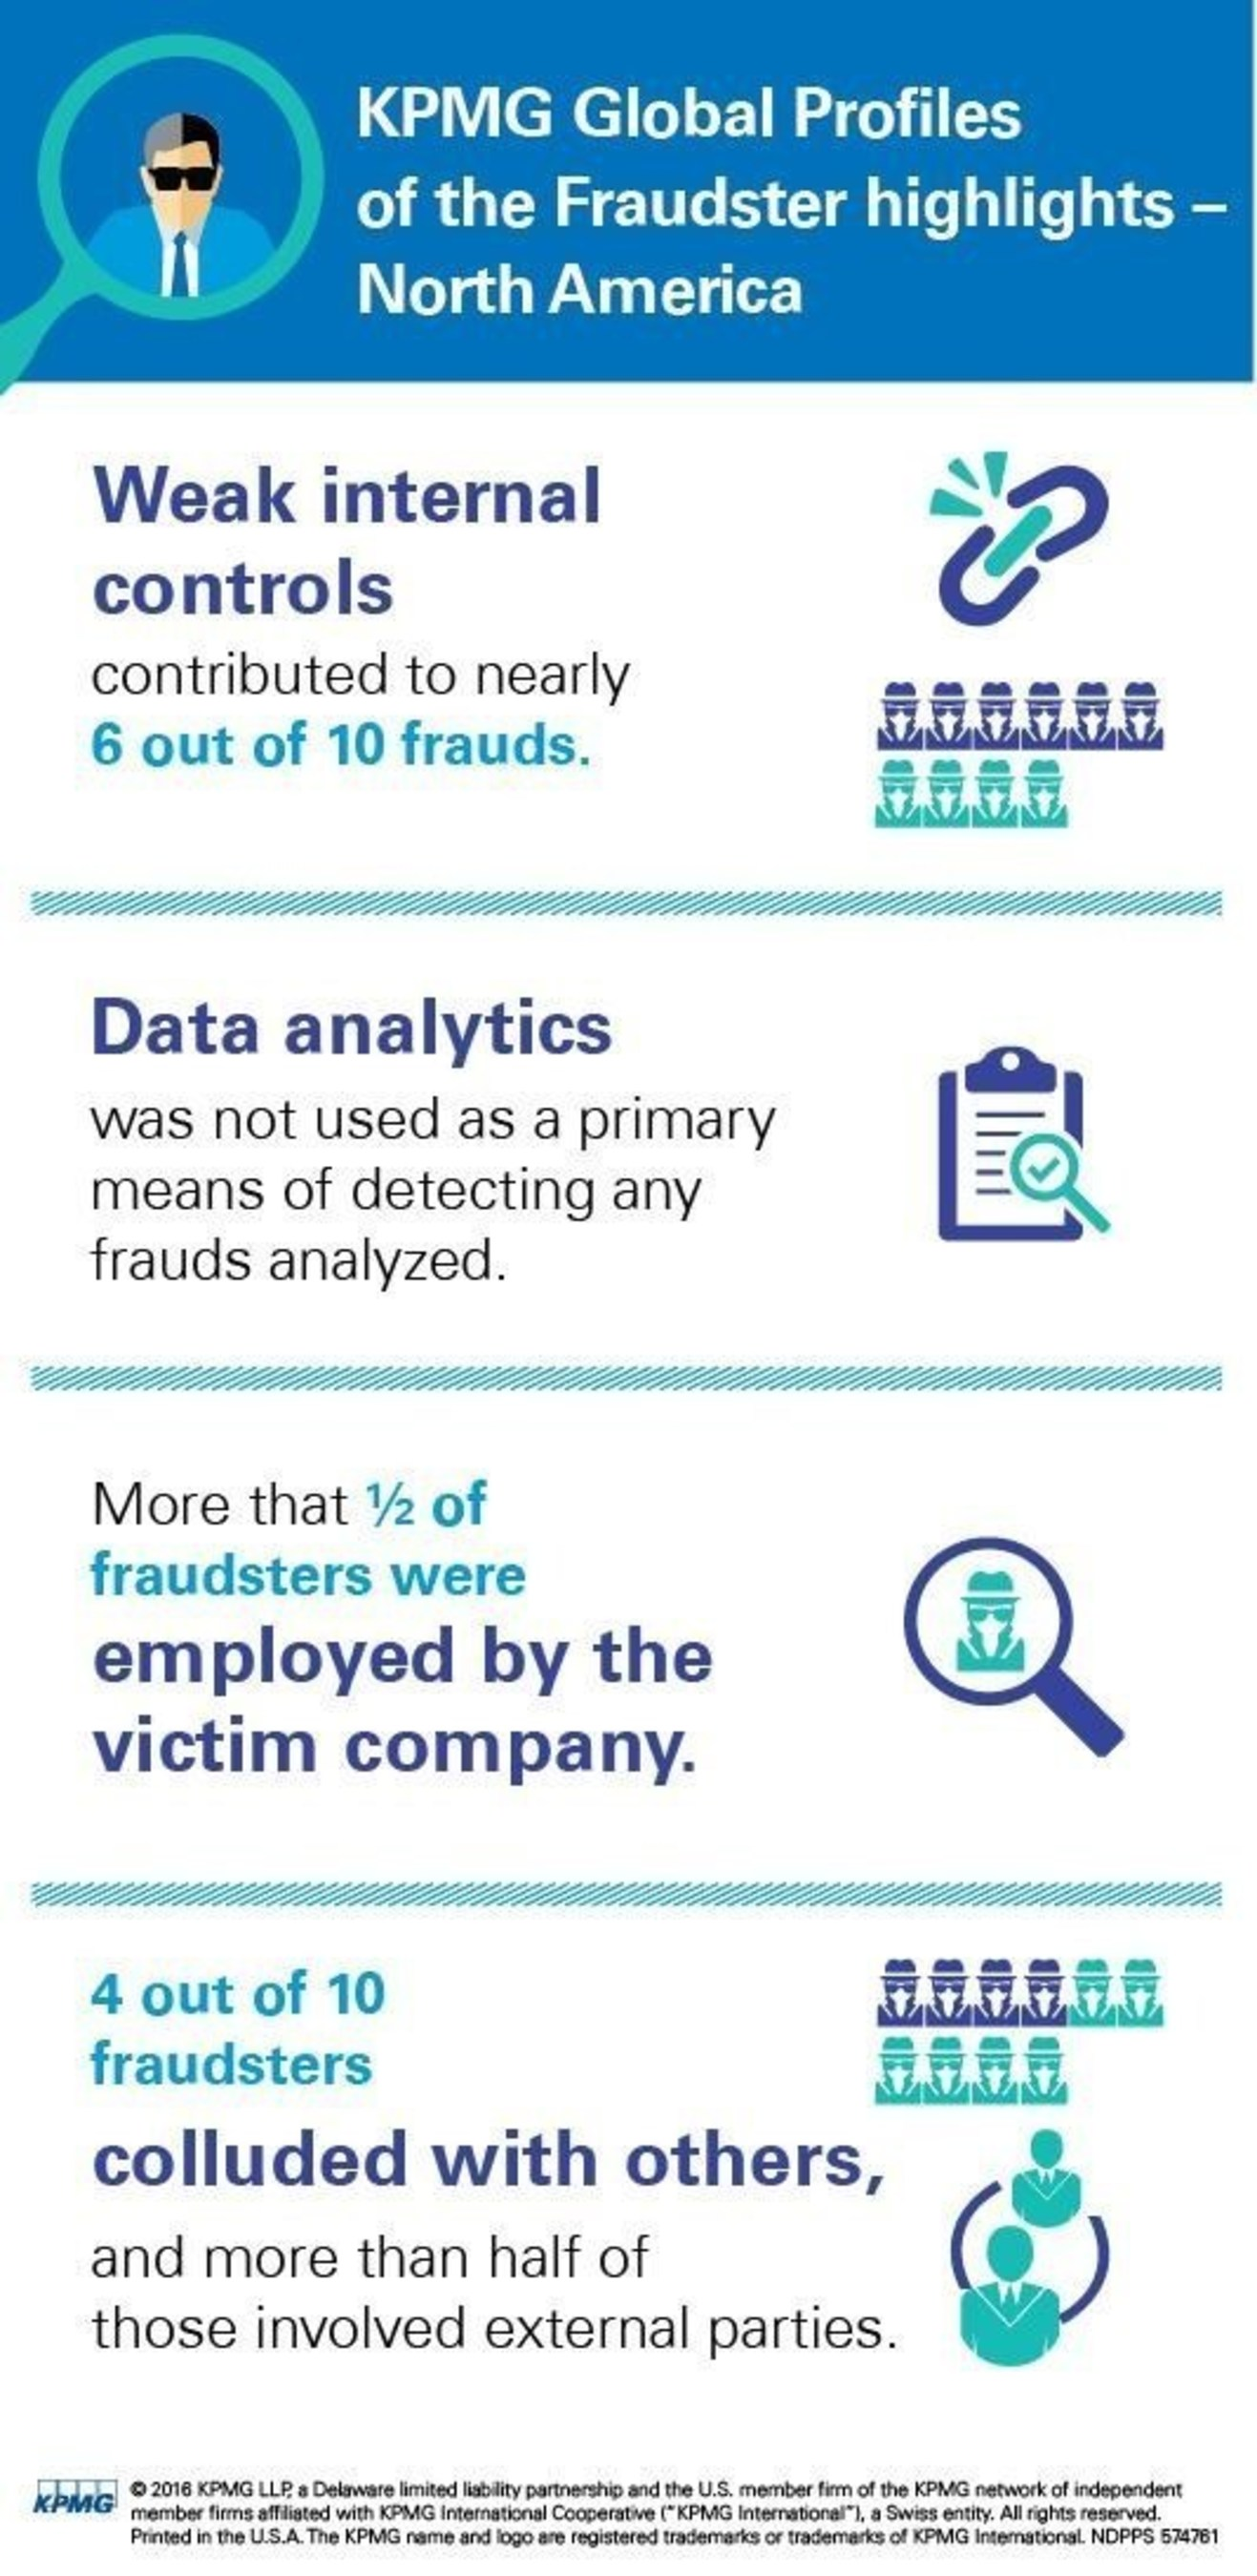 Technology Rarely Leveraged To Spot Fraud, While Perpetrators Advance Tech-Enabled Schemes: KPMG Study